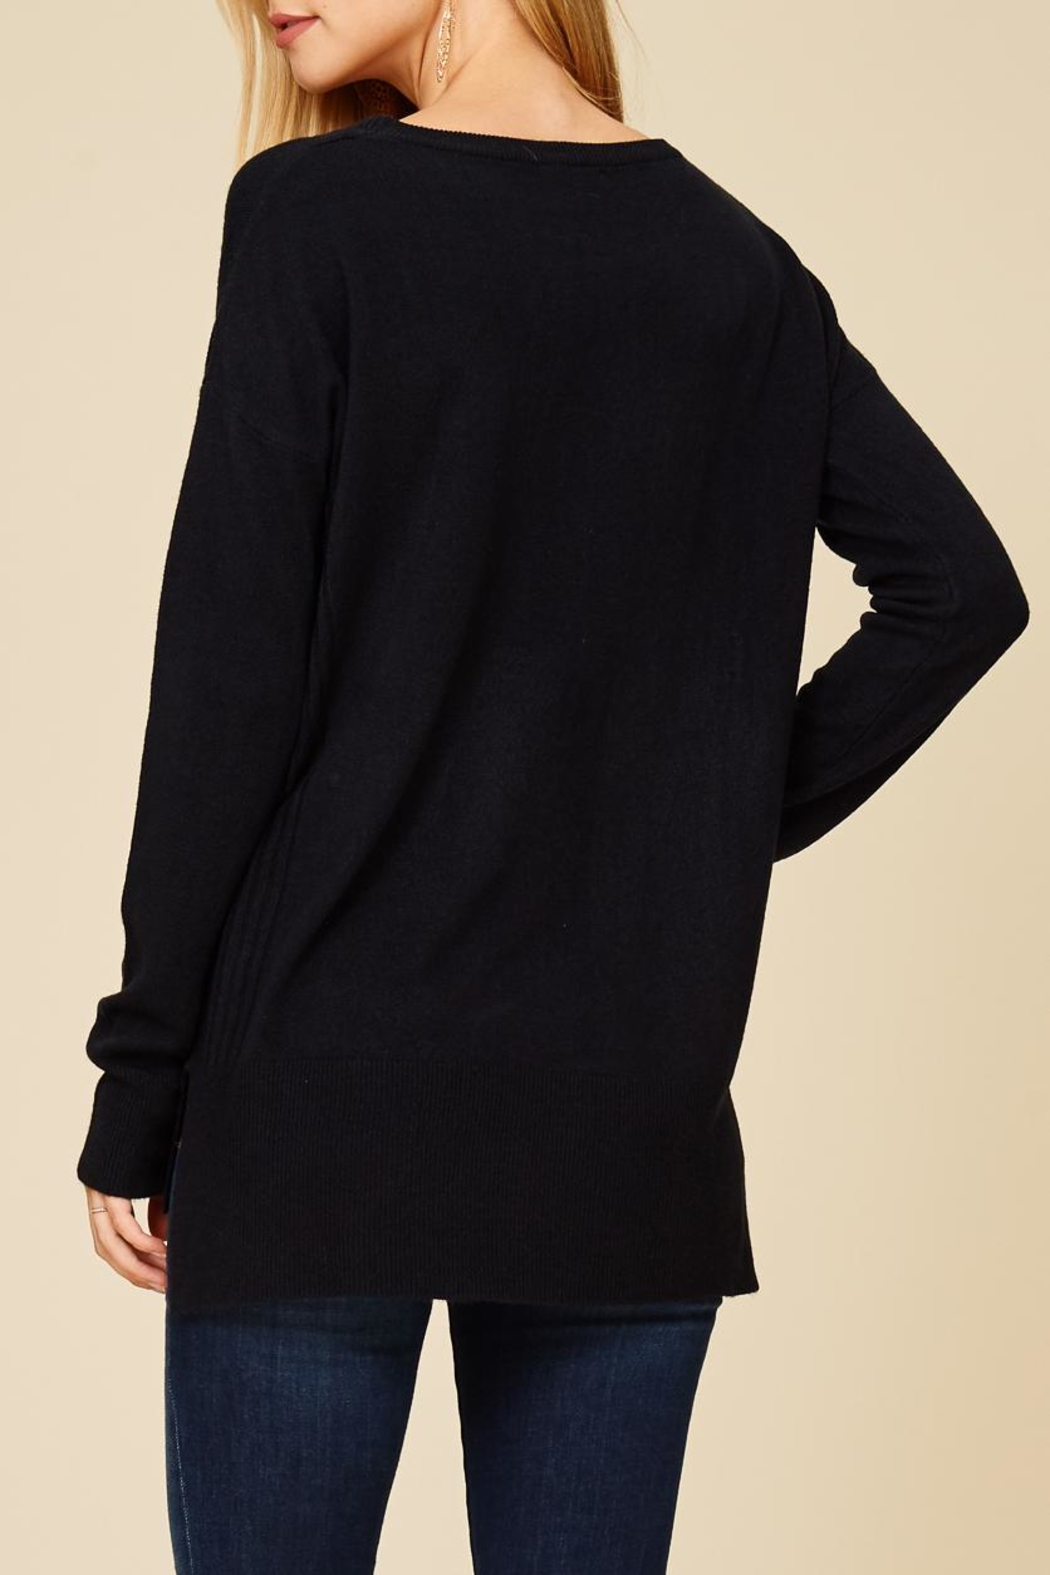 Staccato Center Seam Sweater Top - Front Full Image